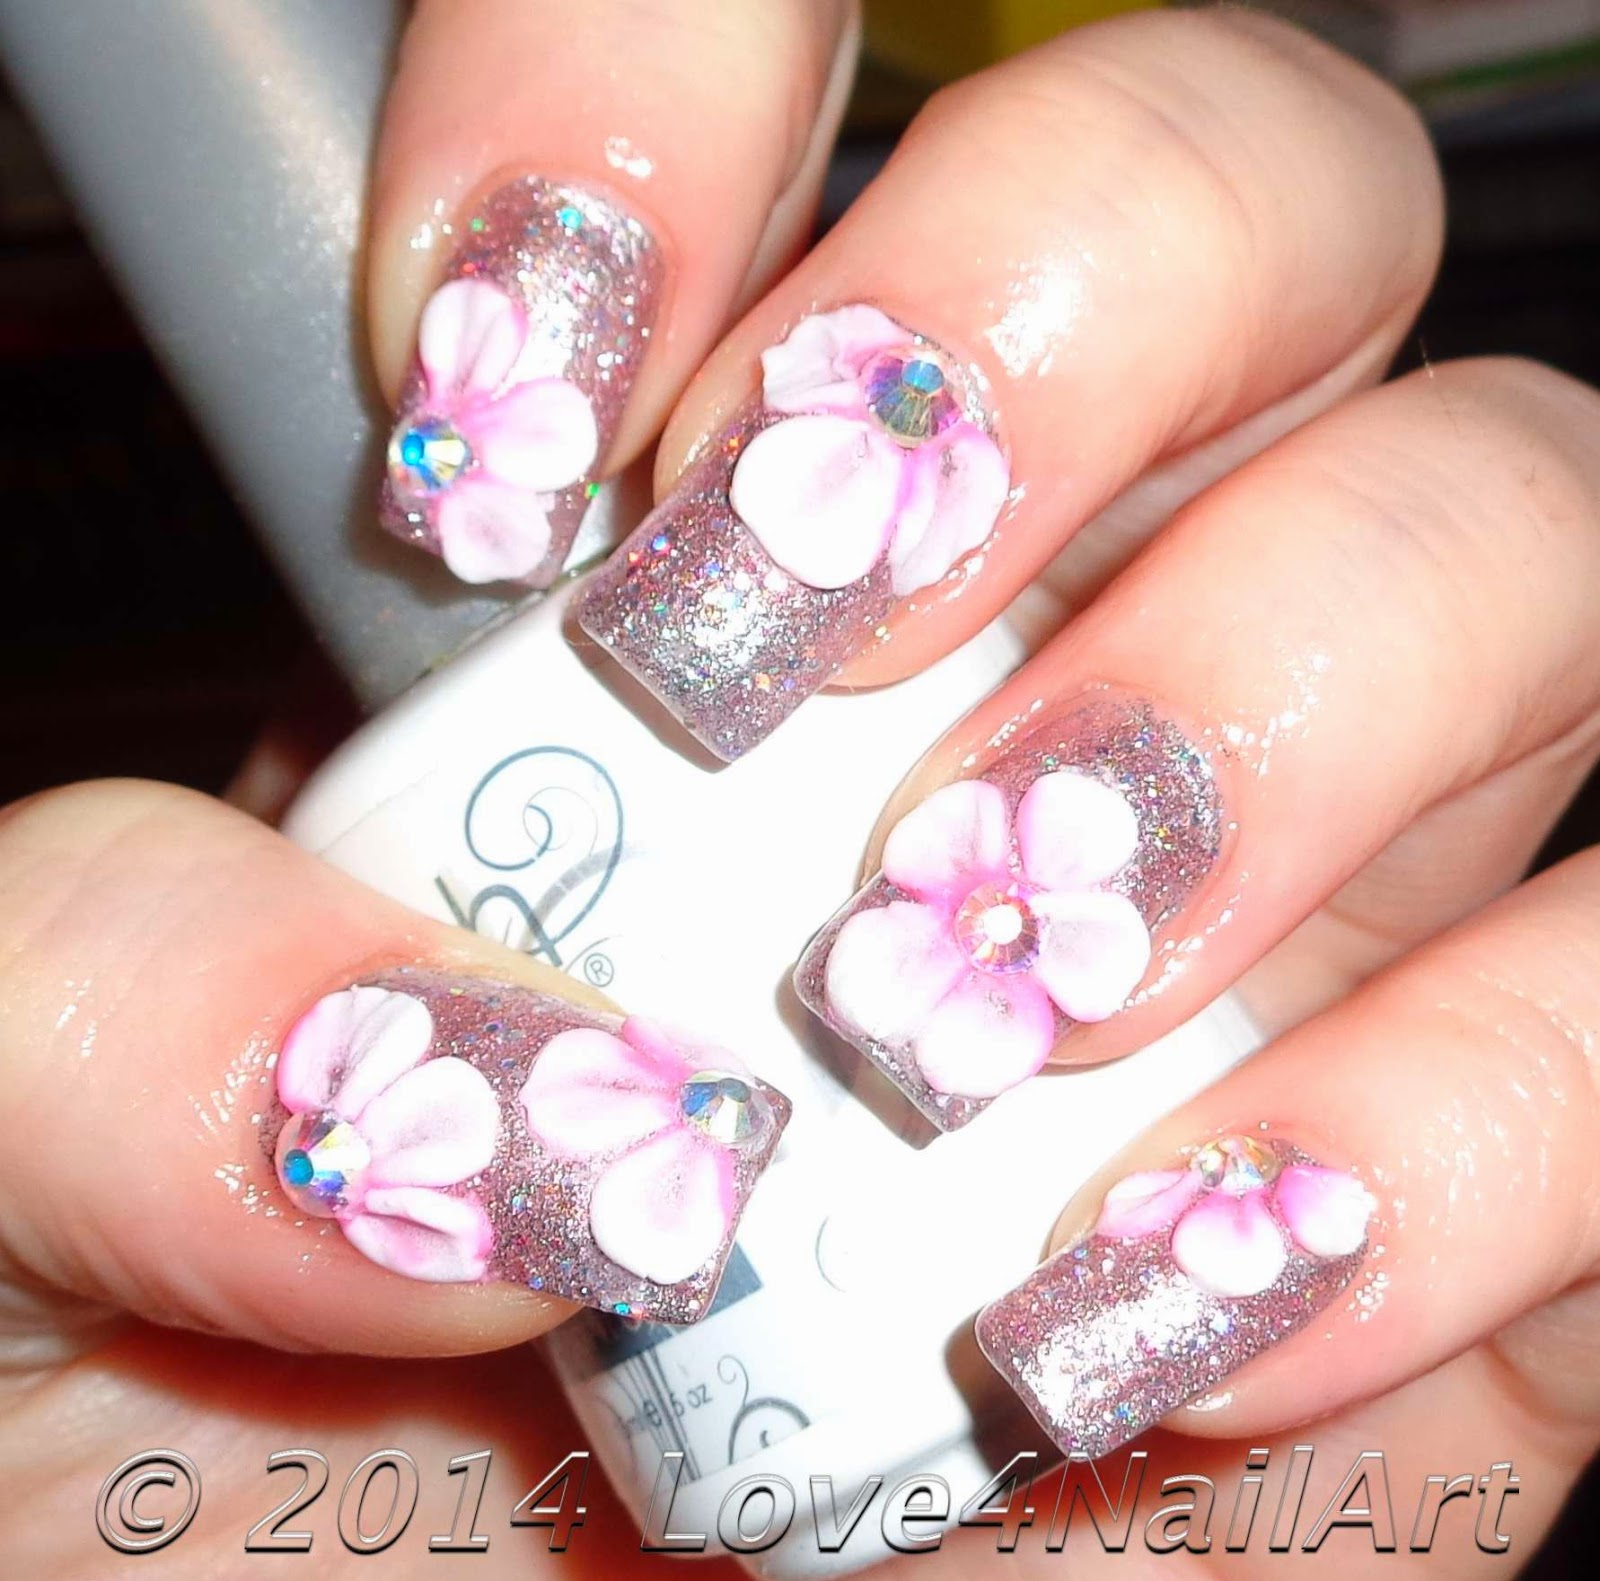 Love4nailart two toned 3d flower nail art design idea two toned 3d flower nail art design idea prinsesfo Gallery